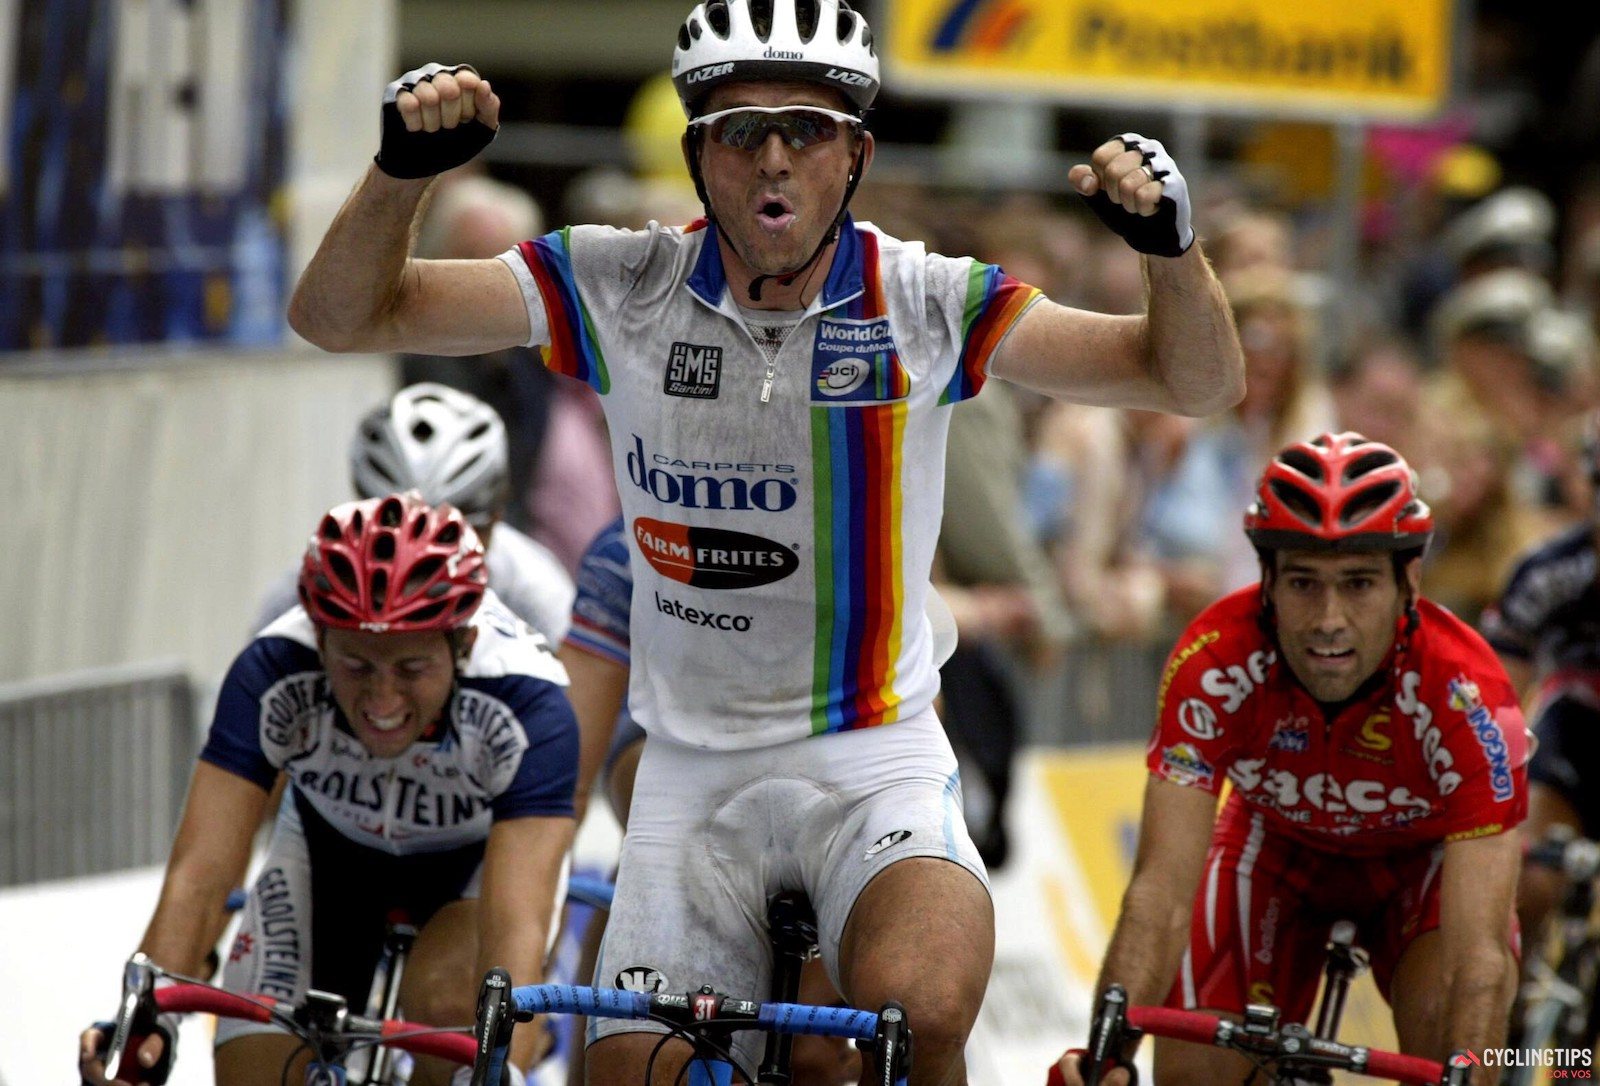 Belgian Johan Museeuw, pictured here at the 2002 HEW Cyclassics, spent much of his career in varying combinations of rainbow stripes. He was the 1996 world road champion, but was often seen sporting the vertical stripes of the UCI World Cup series leader, winning the overall title in 1996 and 1996. Photo: Cor Vos.